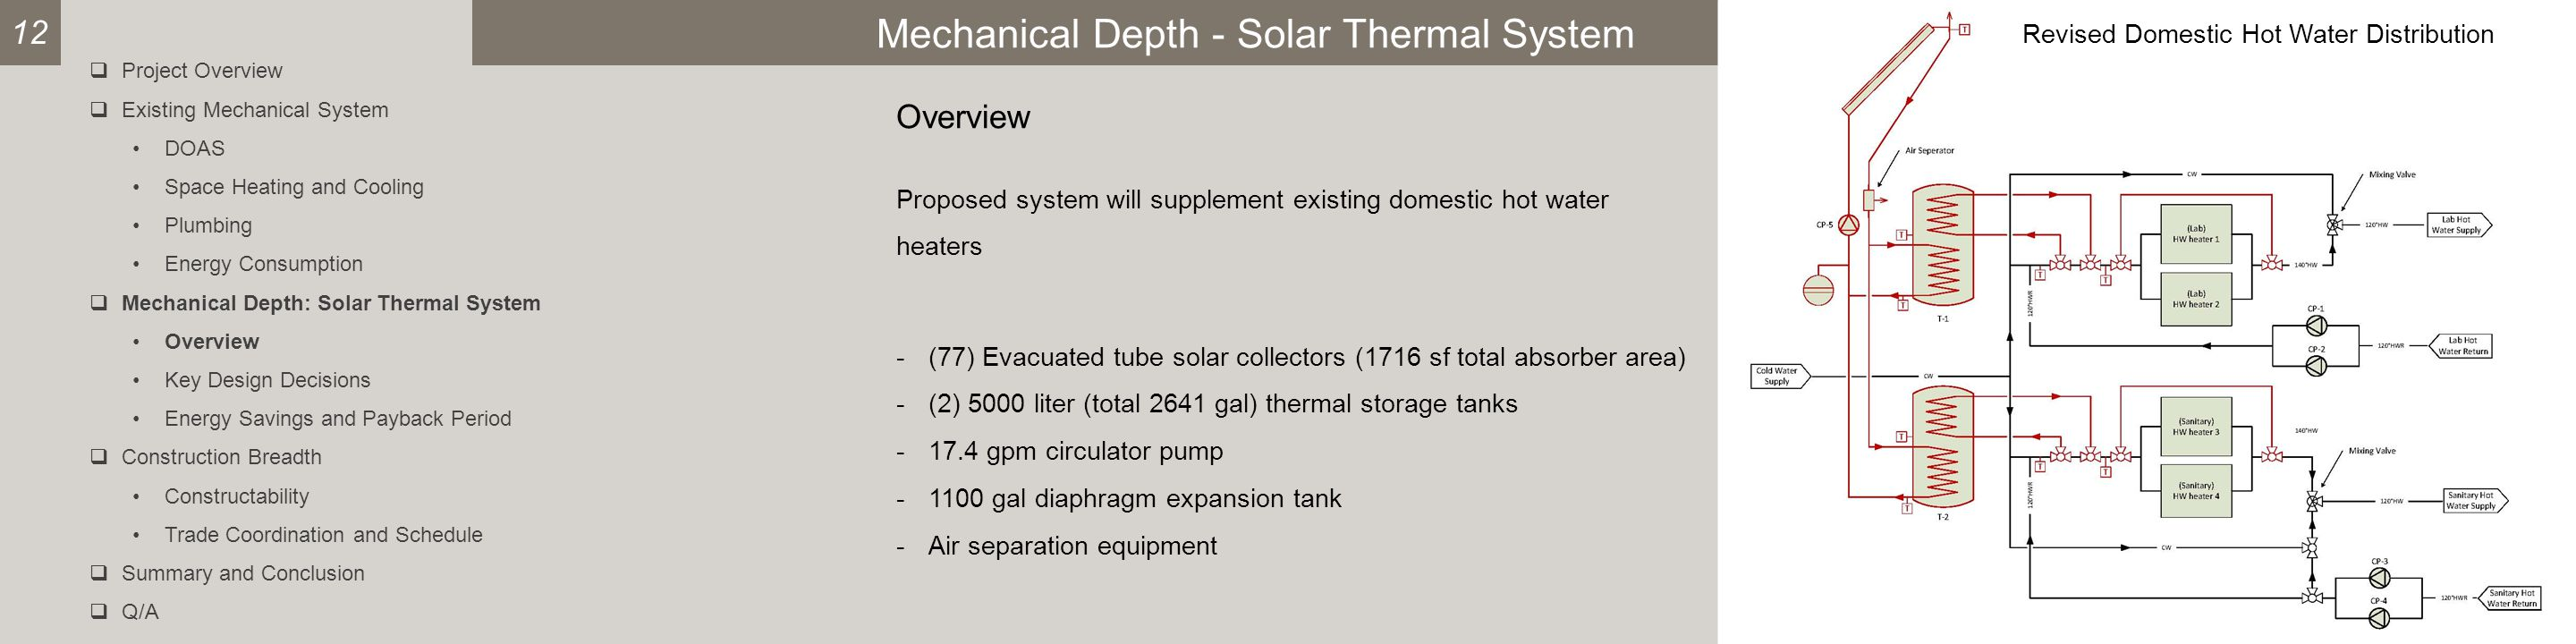 Mechanical Depth - Solar Thermal System Overview Proposed system will supplement existing domestic hot water heaters -(77) Evacuated tube solar collectors (1716 sf total absorber area) -(2) 5000 liter (total 2641 gal) thermal storage tanks -17.4 gpm circulator pump -1100 gal diaphragm expansion tank -Air separation equipment 12  Project Overview  Existing Mechanical System DOAS Space Heating and Cooling Plumbing Energy Consumption  Mechanical Depth: Solar Thermal System Overview Key Design Decisions Energy Savings and Payback Period  Construction Breadth Constructability Trade Coordination and Schedule  Summary and Conclusion  Q/A Revised Domestic Hot Water Distribution